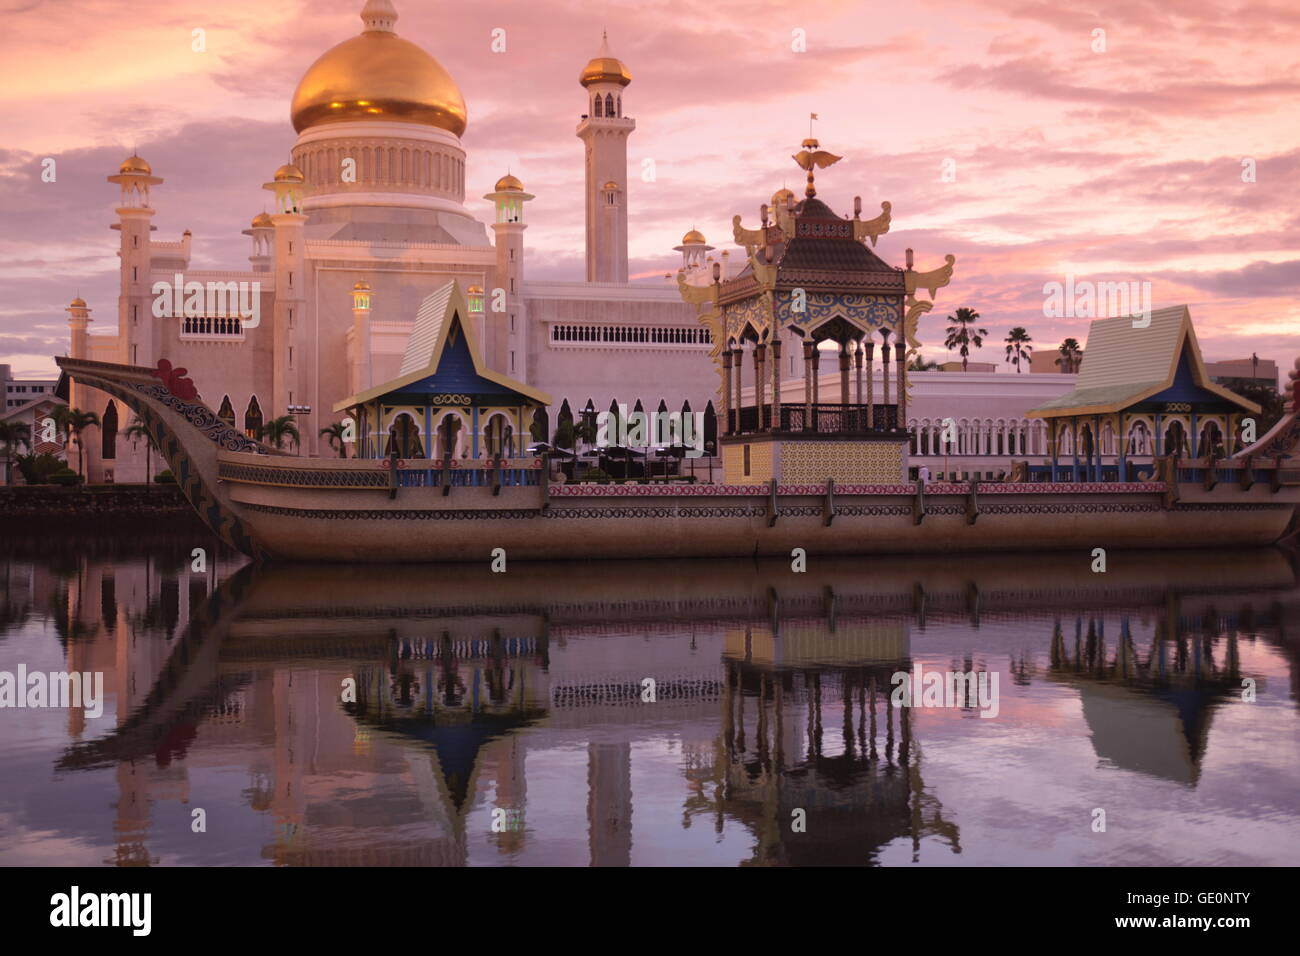 the Omar Ali Saifuddien Mosque in the city of Bandar seri Begawan in the country of Brunei Darussalam on Borneo - Stock Image